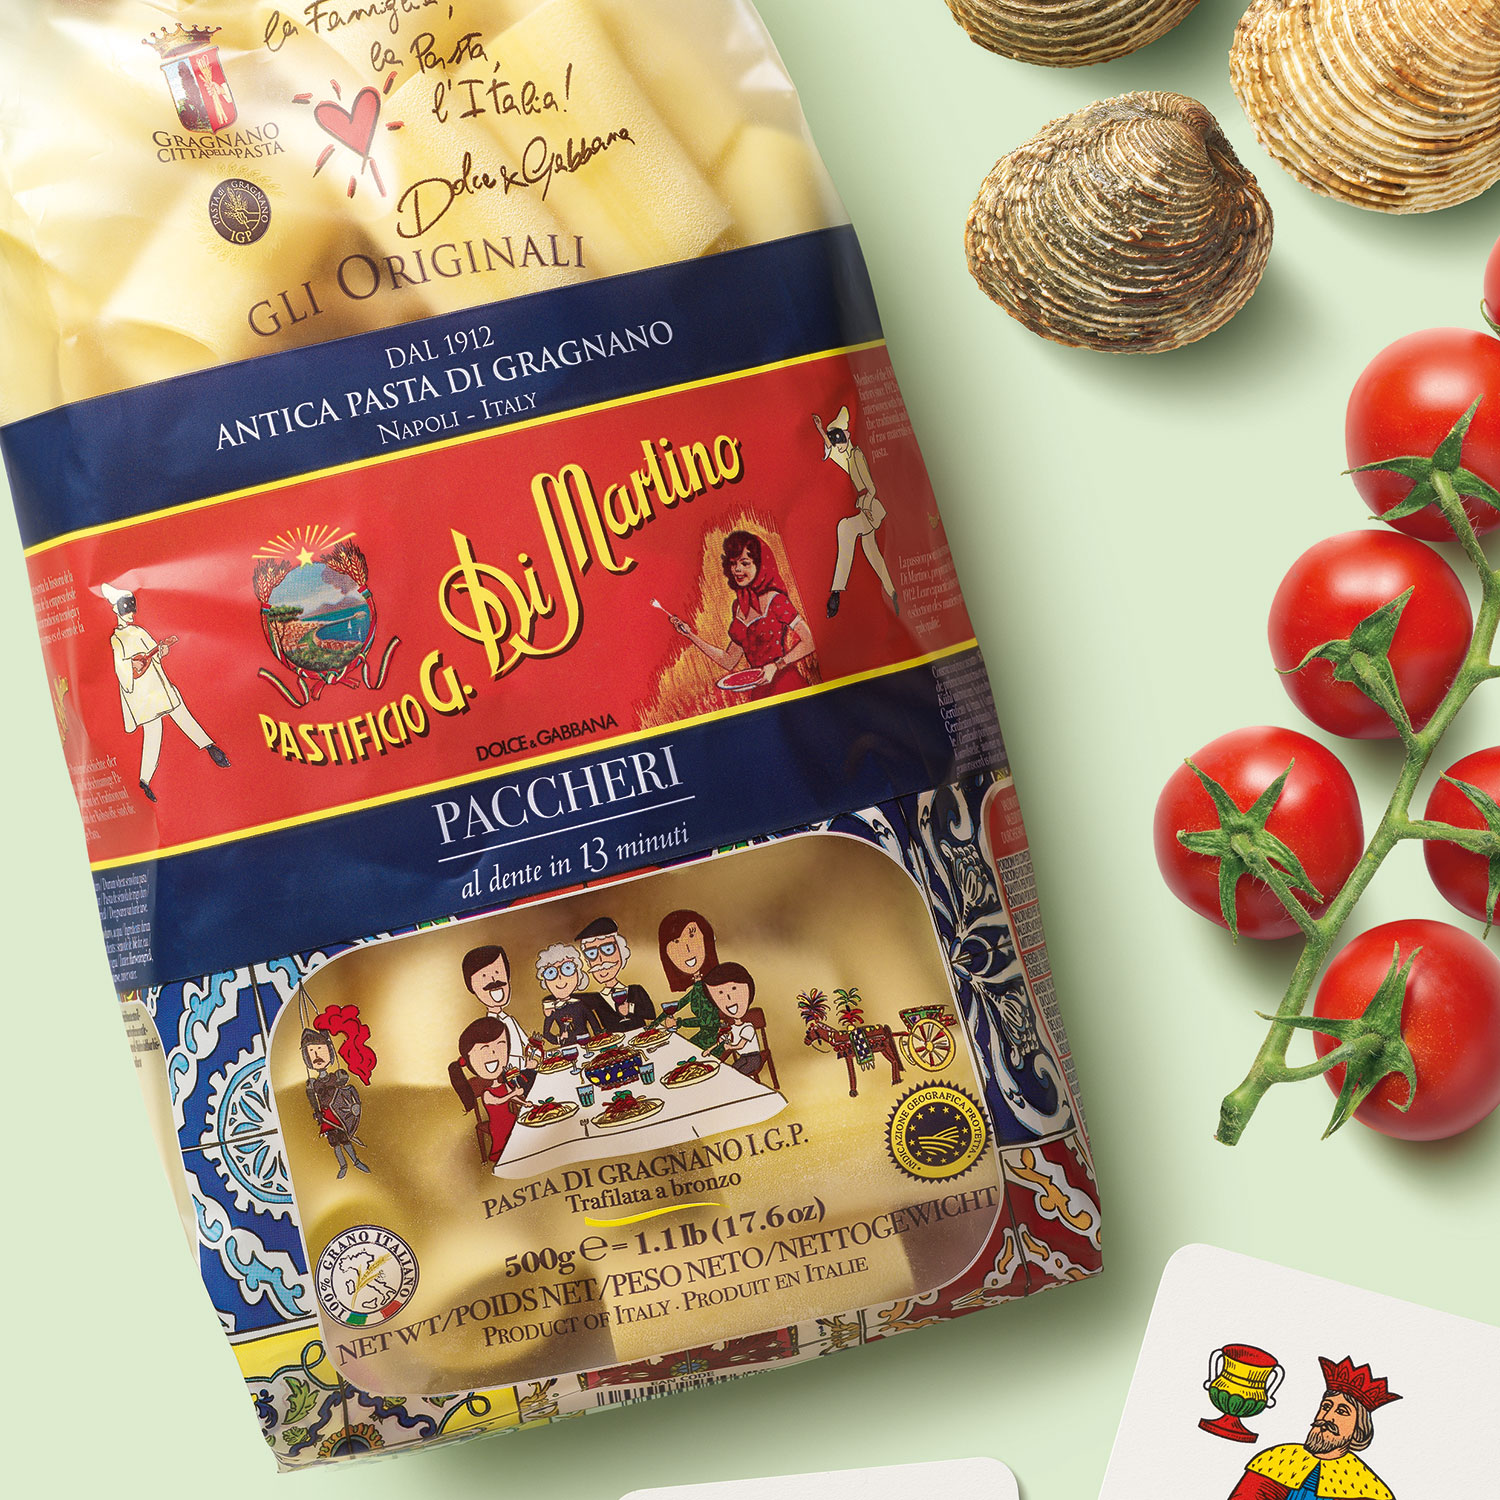 Italian pasta DI MARTINO 500gr durum wheat pasta